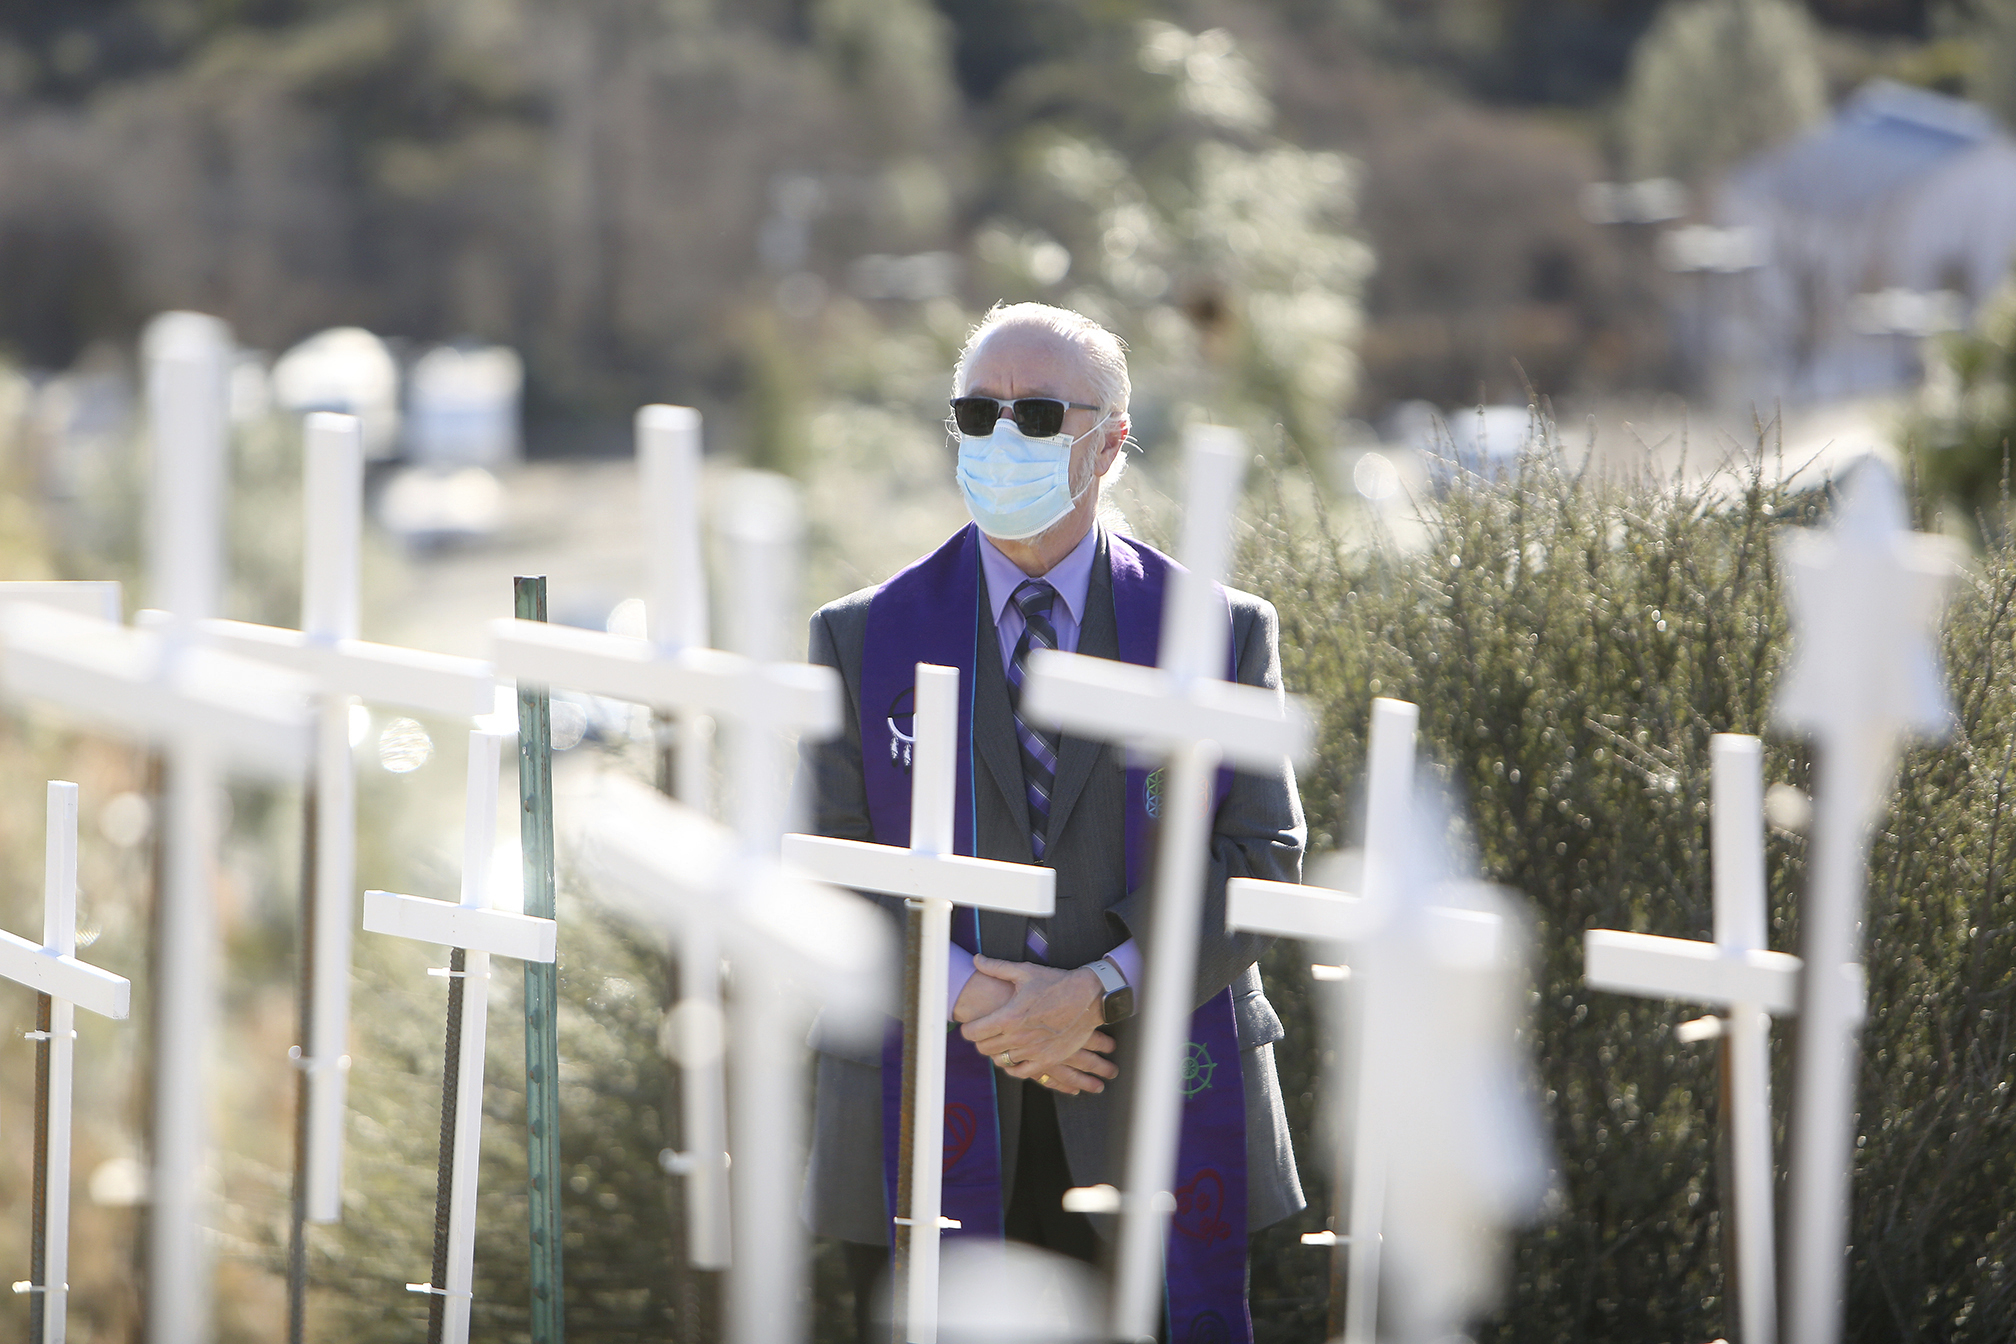 Senior Minister Rev. Rafe Ellis, of Sierra Center for Spiritual Living, gets a close look at the COVID Memorial placed on the Old Barn Self Storage property adjacent to the Golden Center Freeway Tuesday, Jan. 19, 2021 in Grass Valley, Calif. (Elias Funez/The Union via AP)